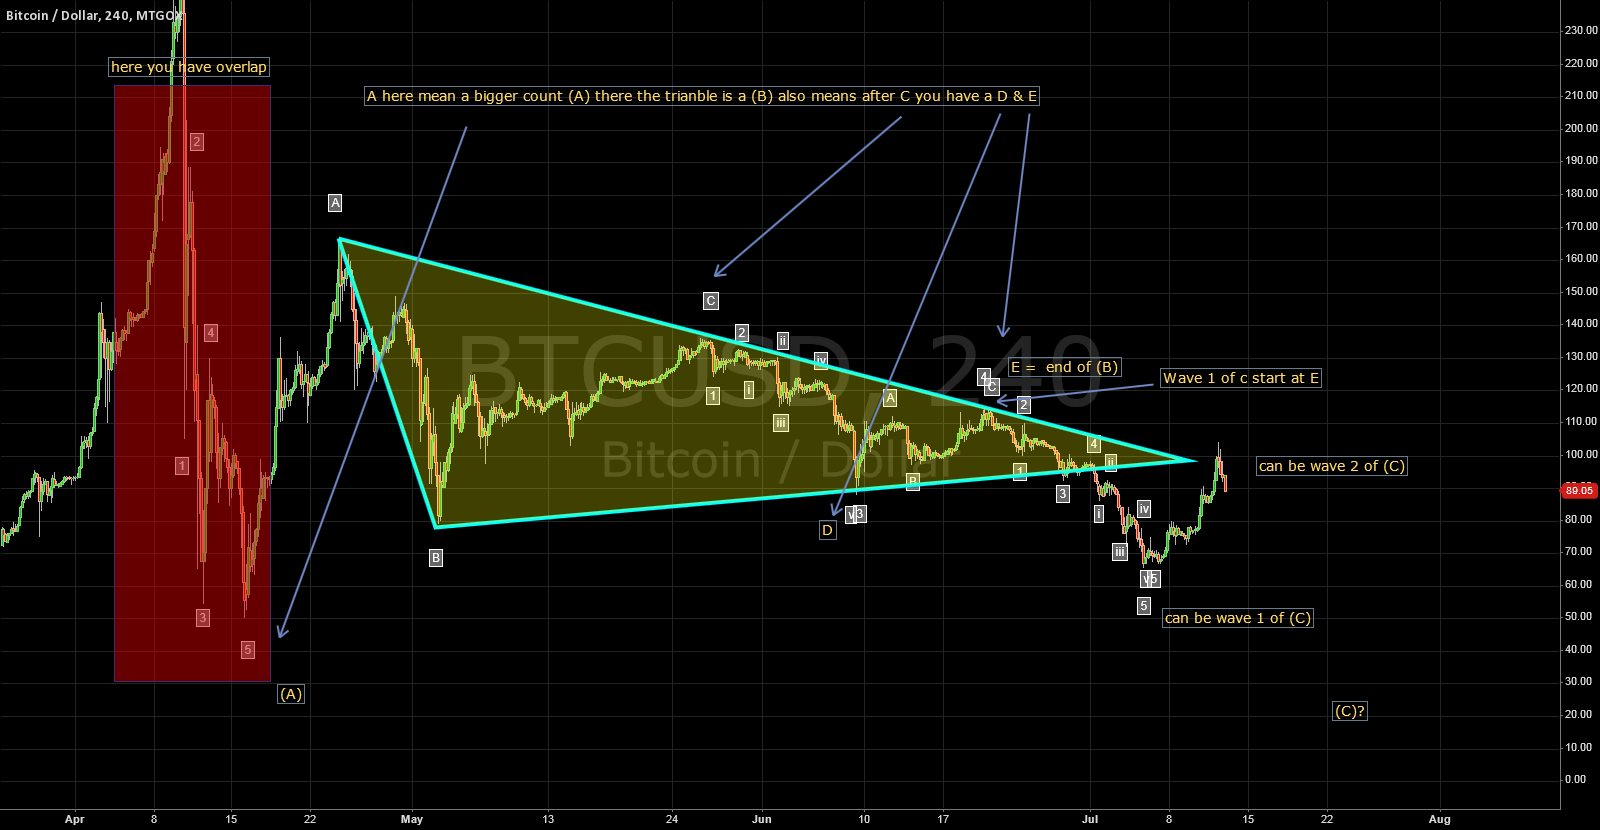 a reply  to Wave 5 is extending. The forecasted bottom is ~ 64,